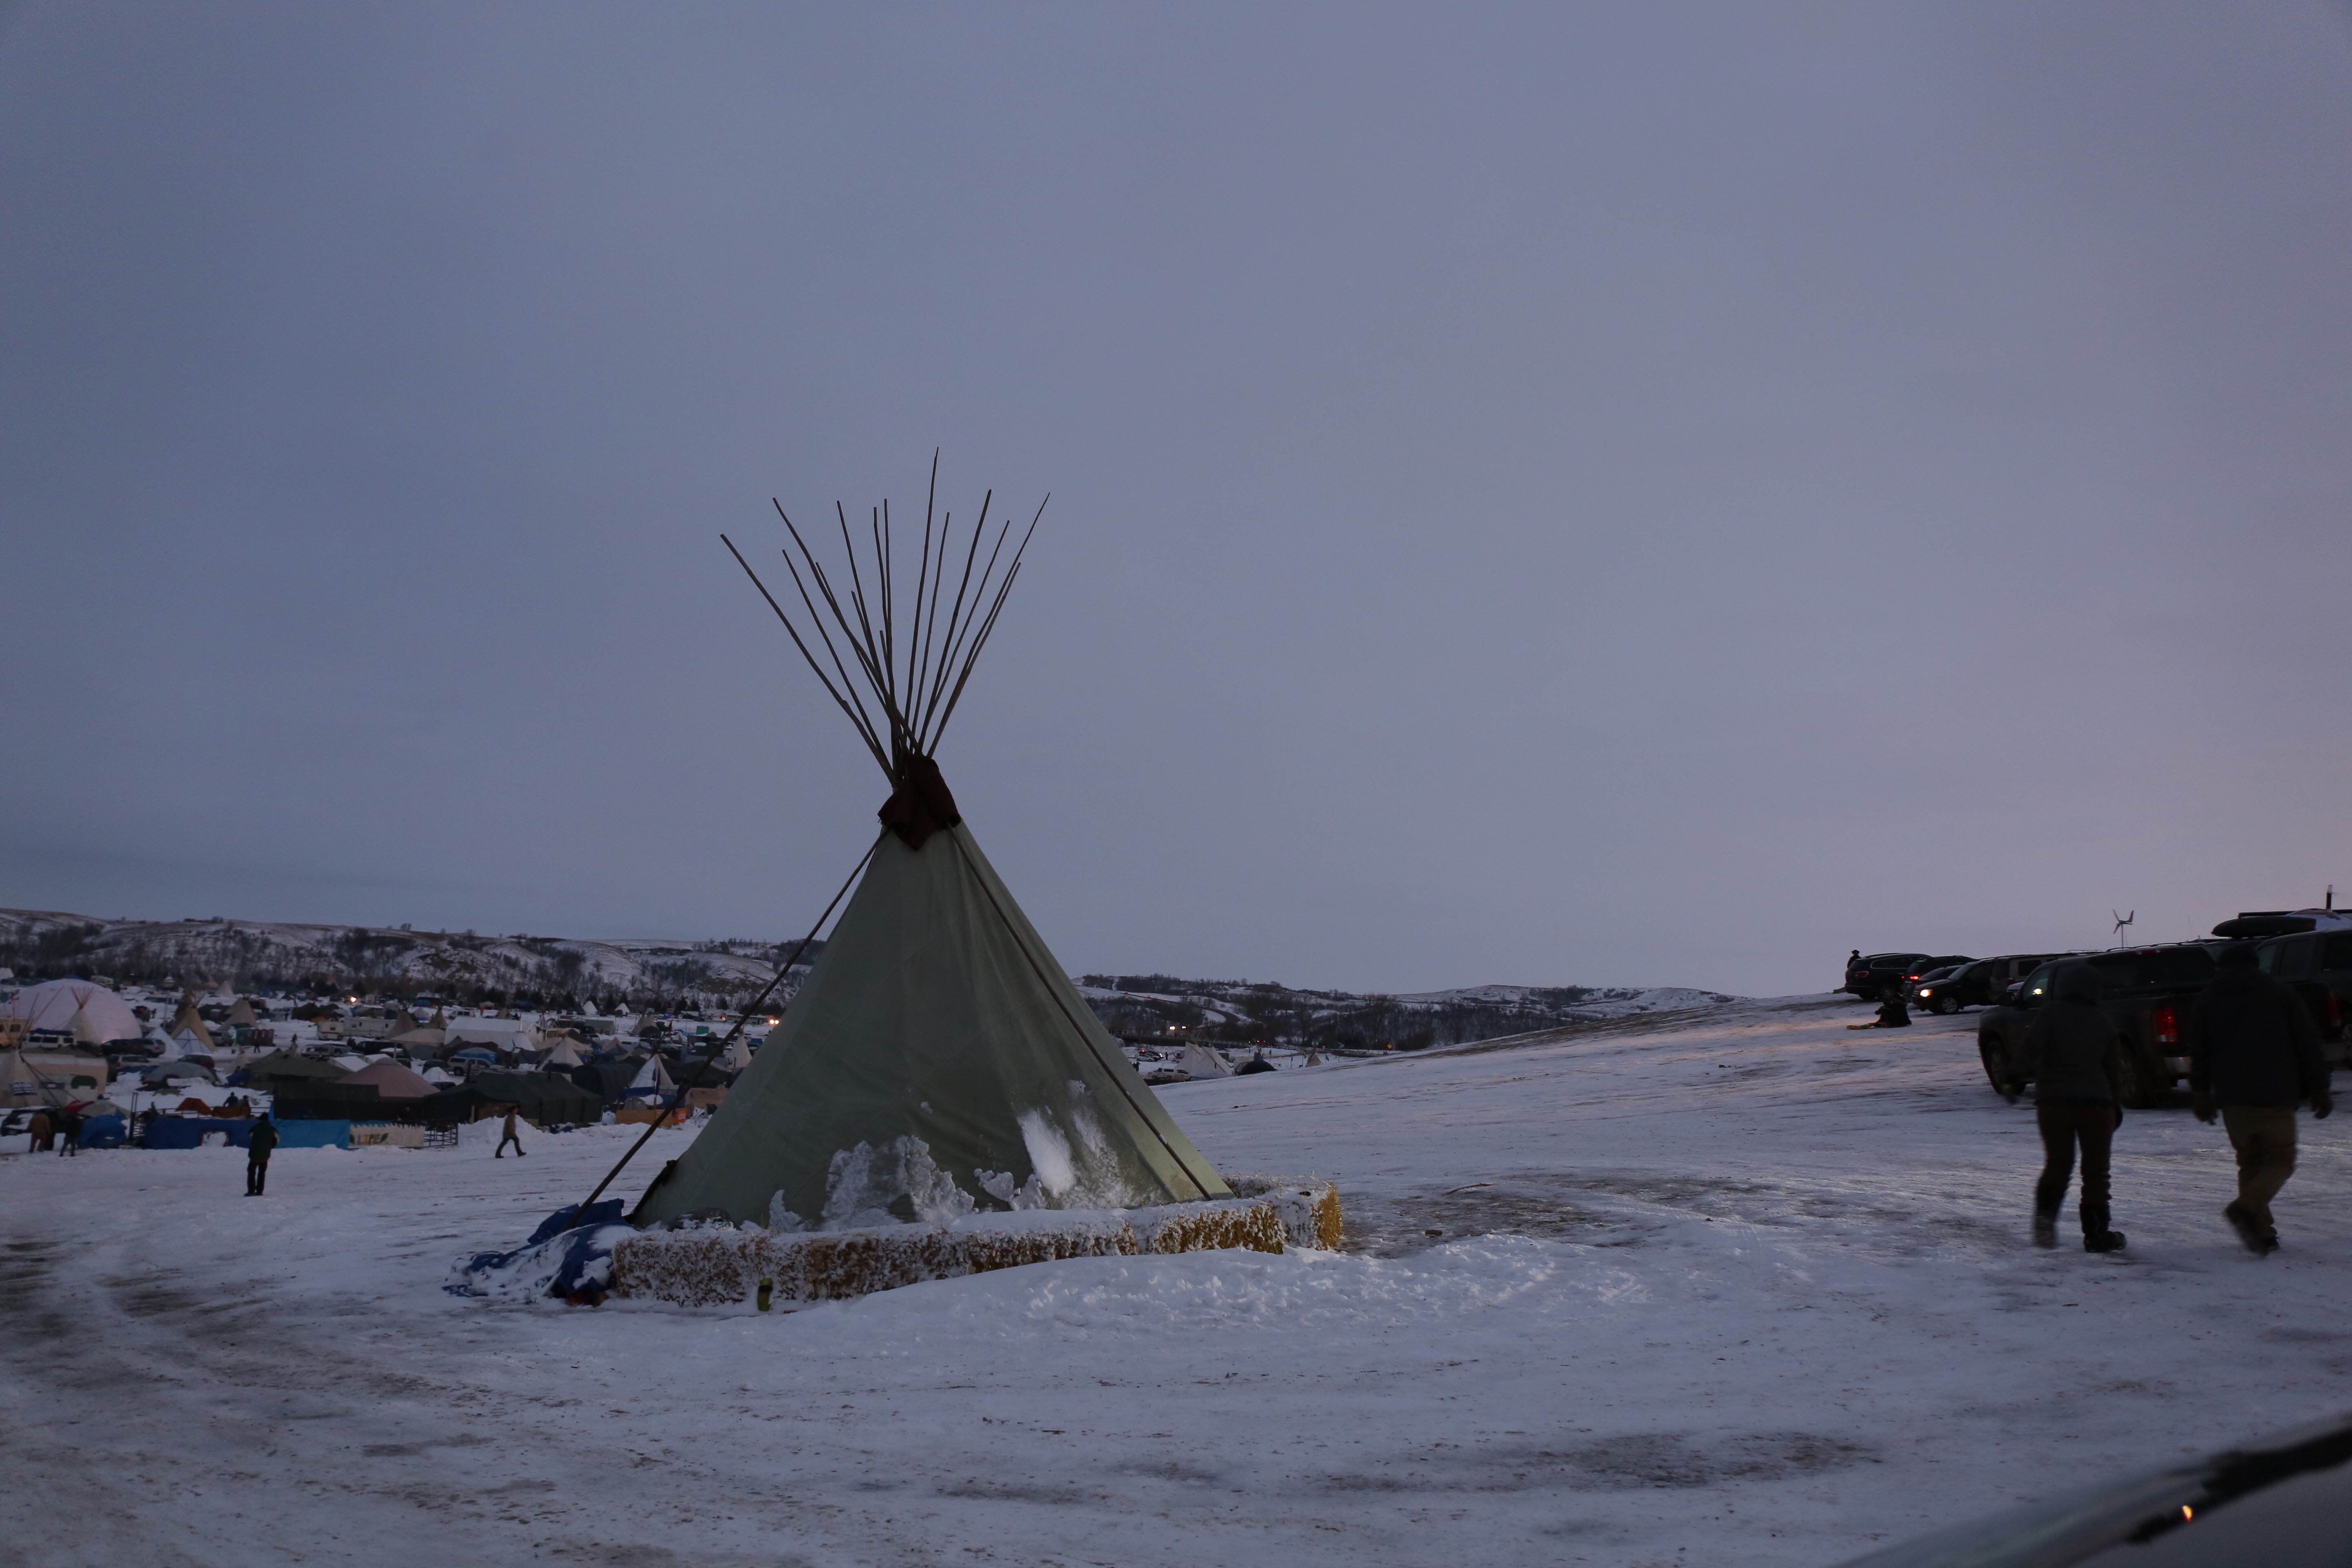 One of many traditional teepees set up across the Standing Rock camp near Cannon Ball, North Dakota. Thousands of activists have squared off against authorities in frigid conditions to oppose a multibillion-dollar pipeline project near a Native Ameri...